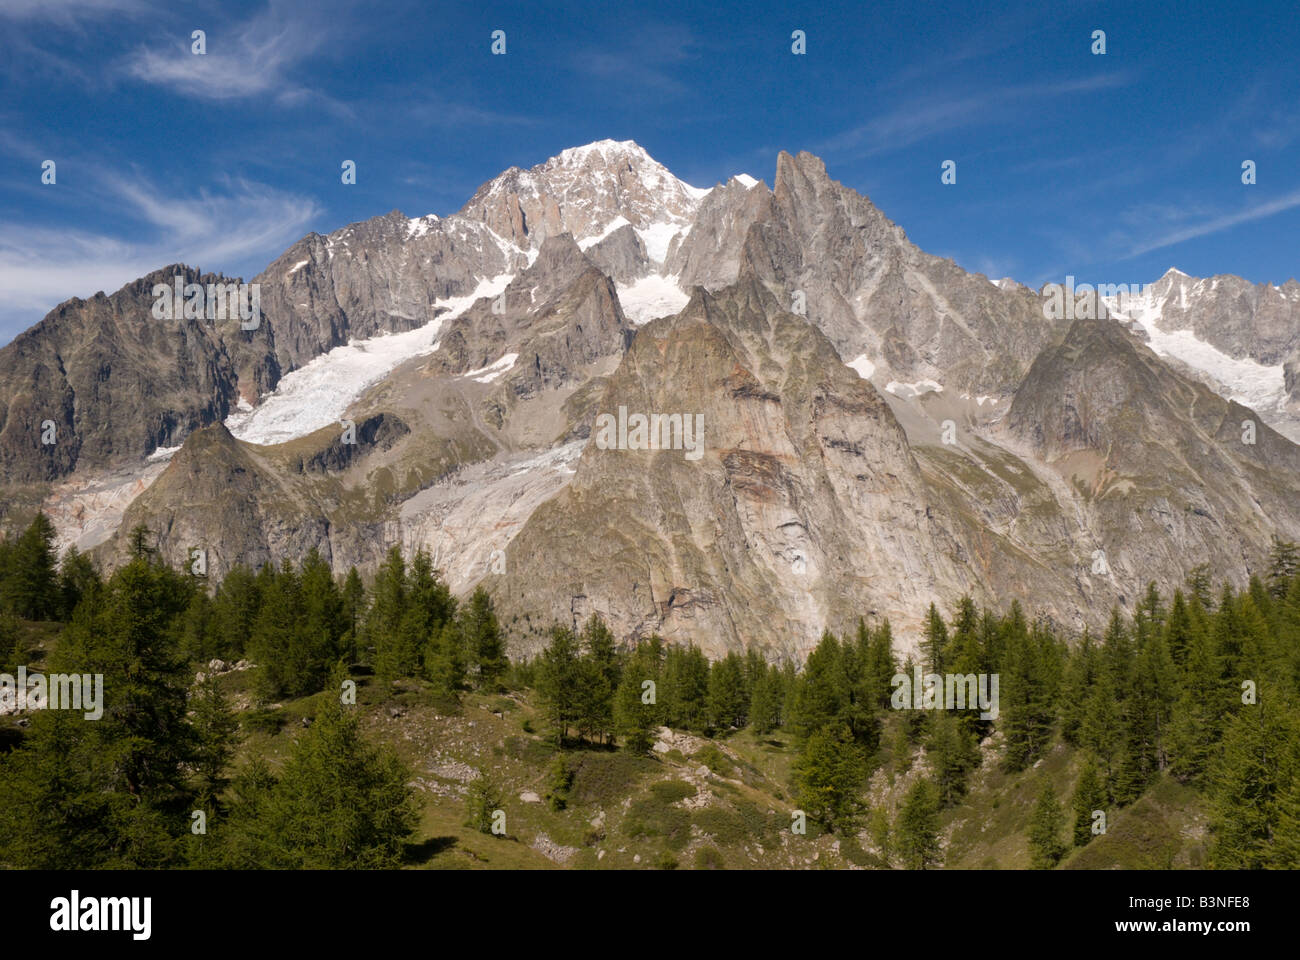 Alpine conifers dot the terminal moraine of the Miage Glacier with the Mont Blanc Massif behind. - Stock Image